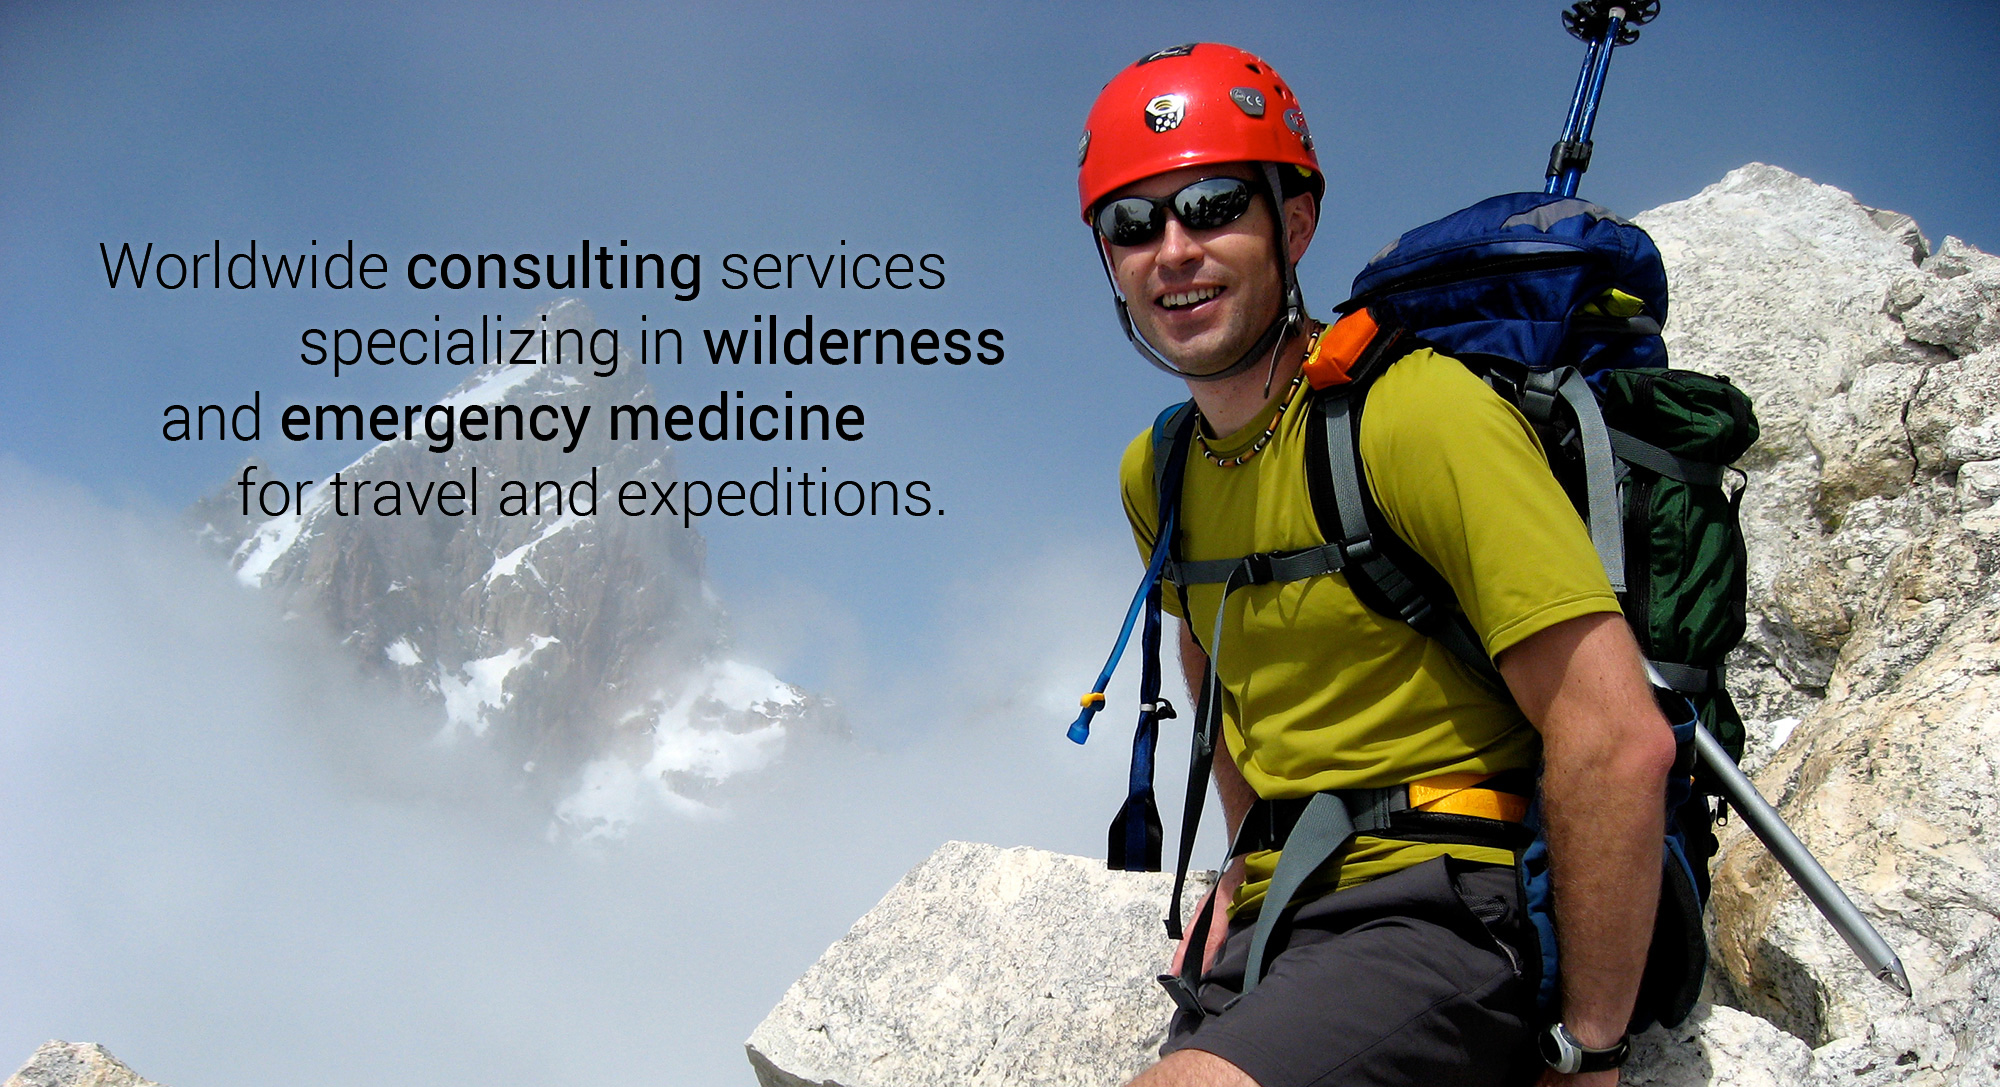 Worldwide consulting services specializing in wilderness and emergency medicine for travel and expeditions.